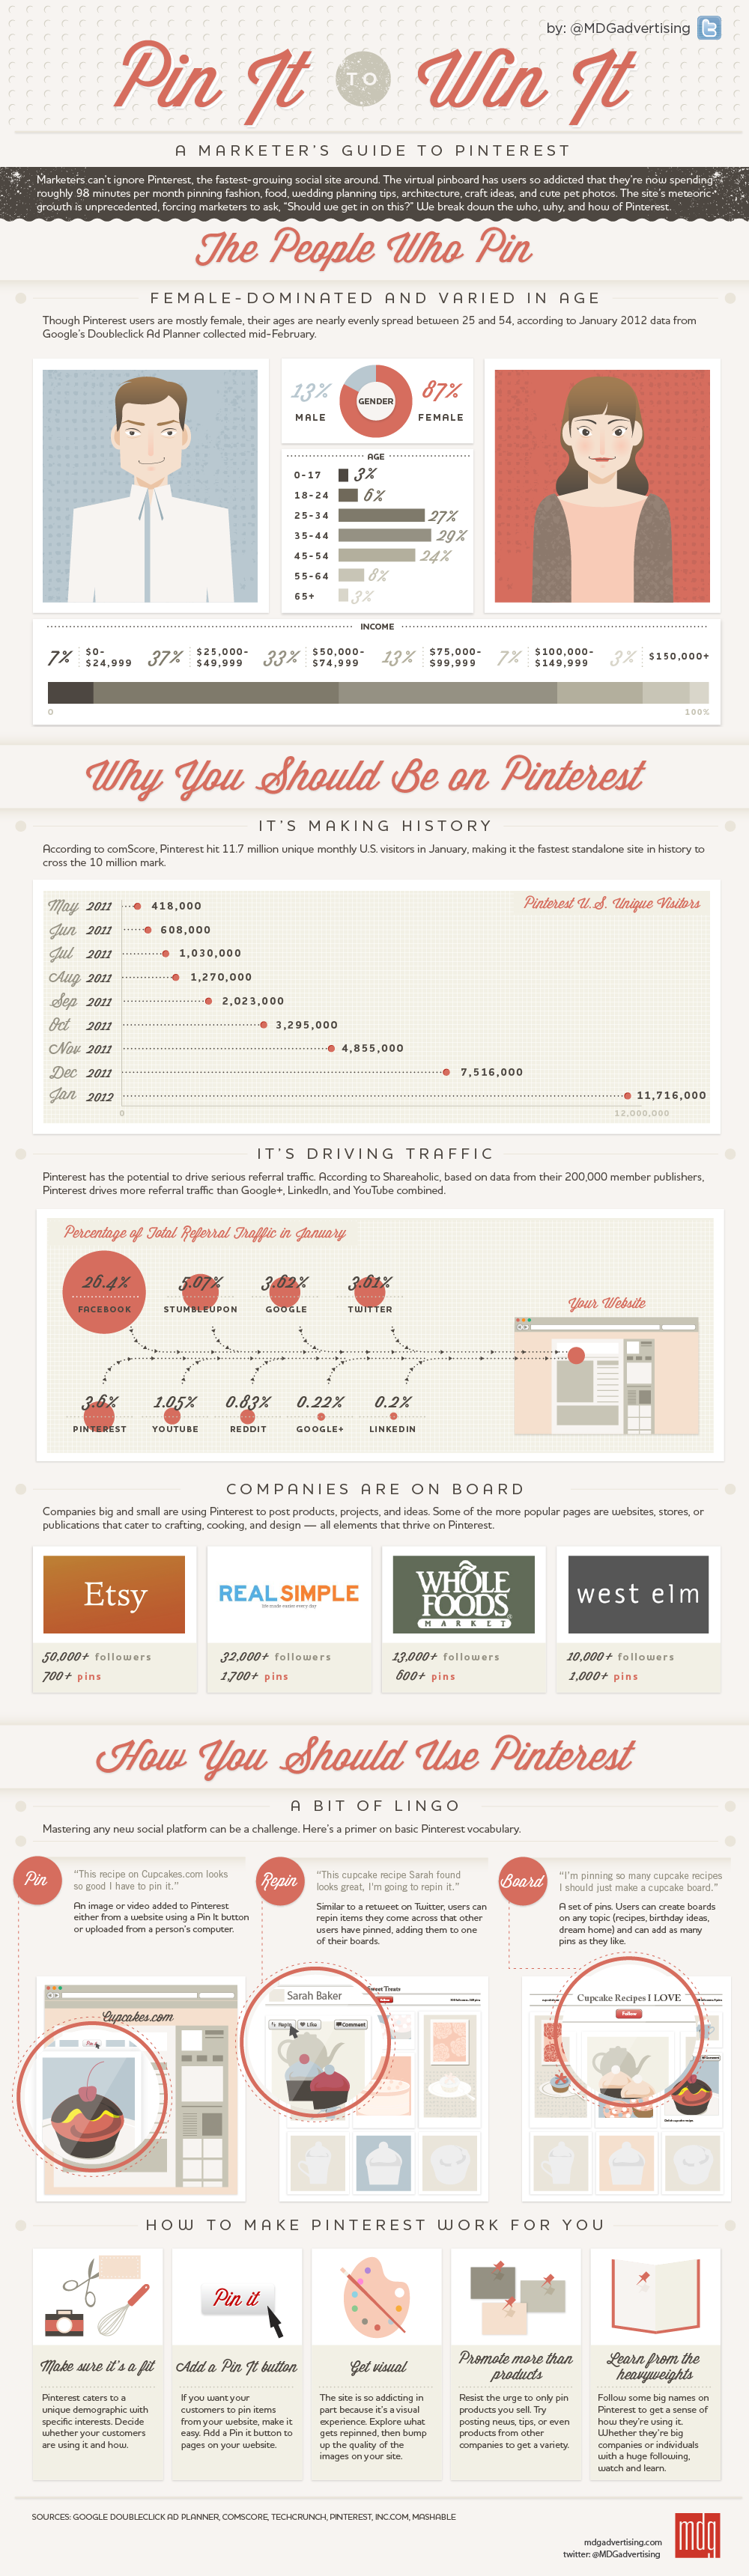 Infographic on Pinterest by MDG Advertising